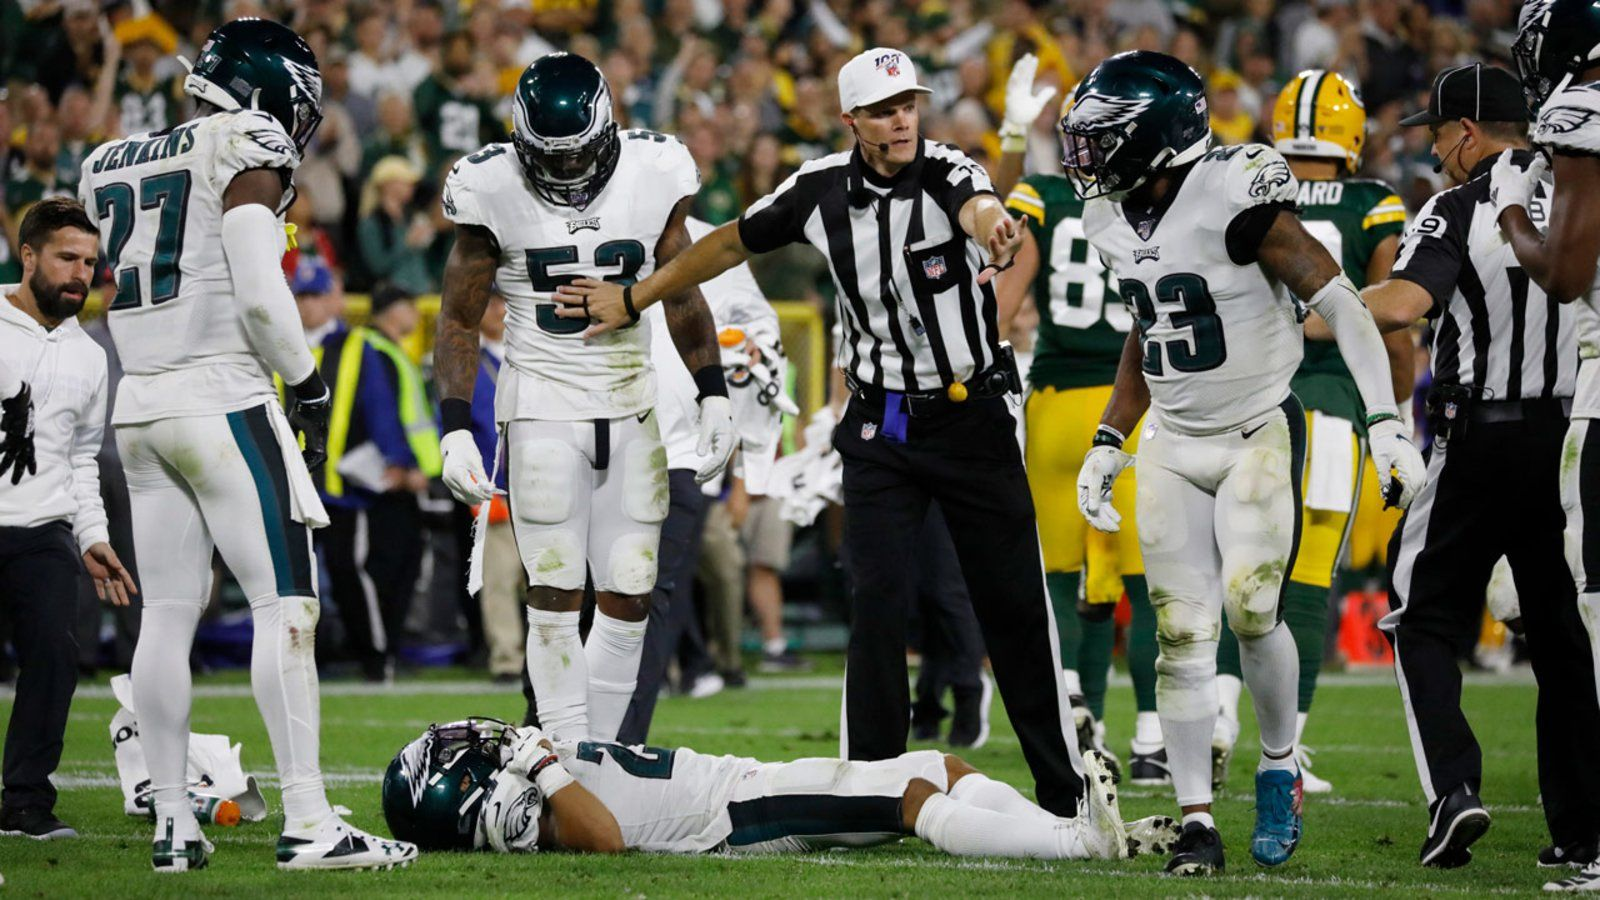 Nfl News Jalen Ramsey Trade Deal With Eagles Imminent After The Packers Game Injuries Nfl News Packers Games Jalen Ramsey